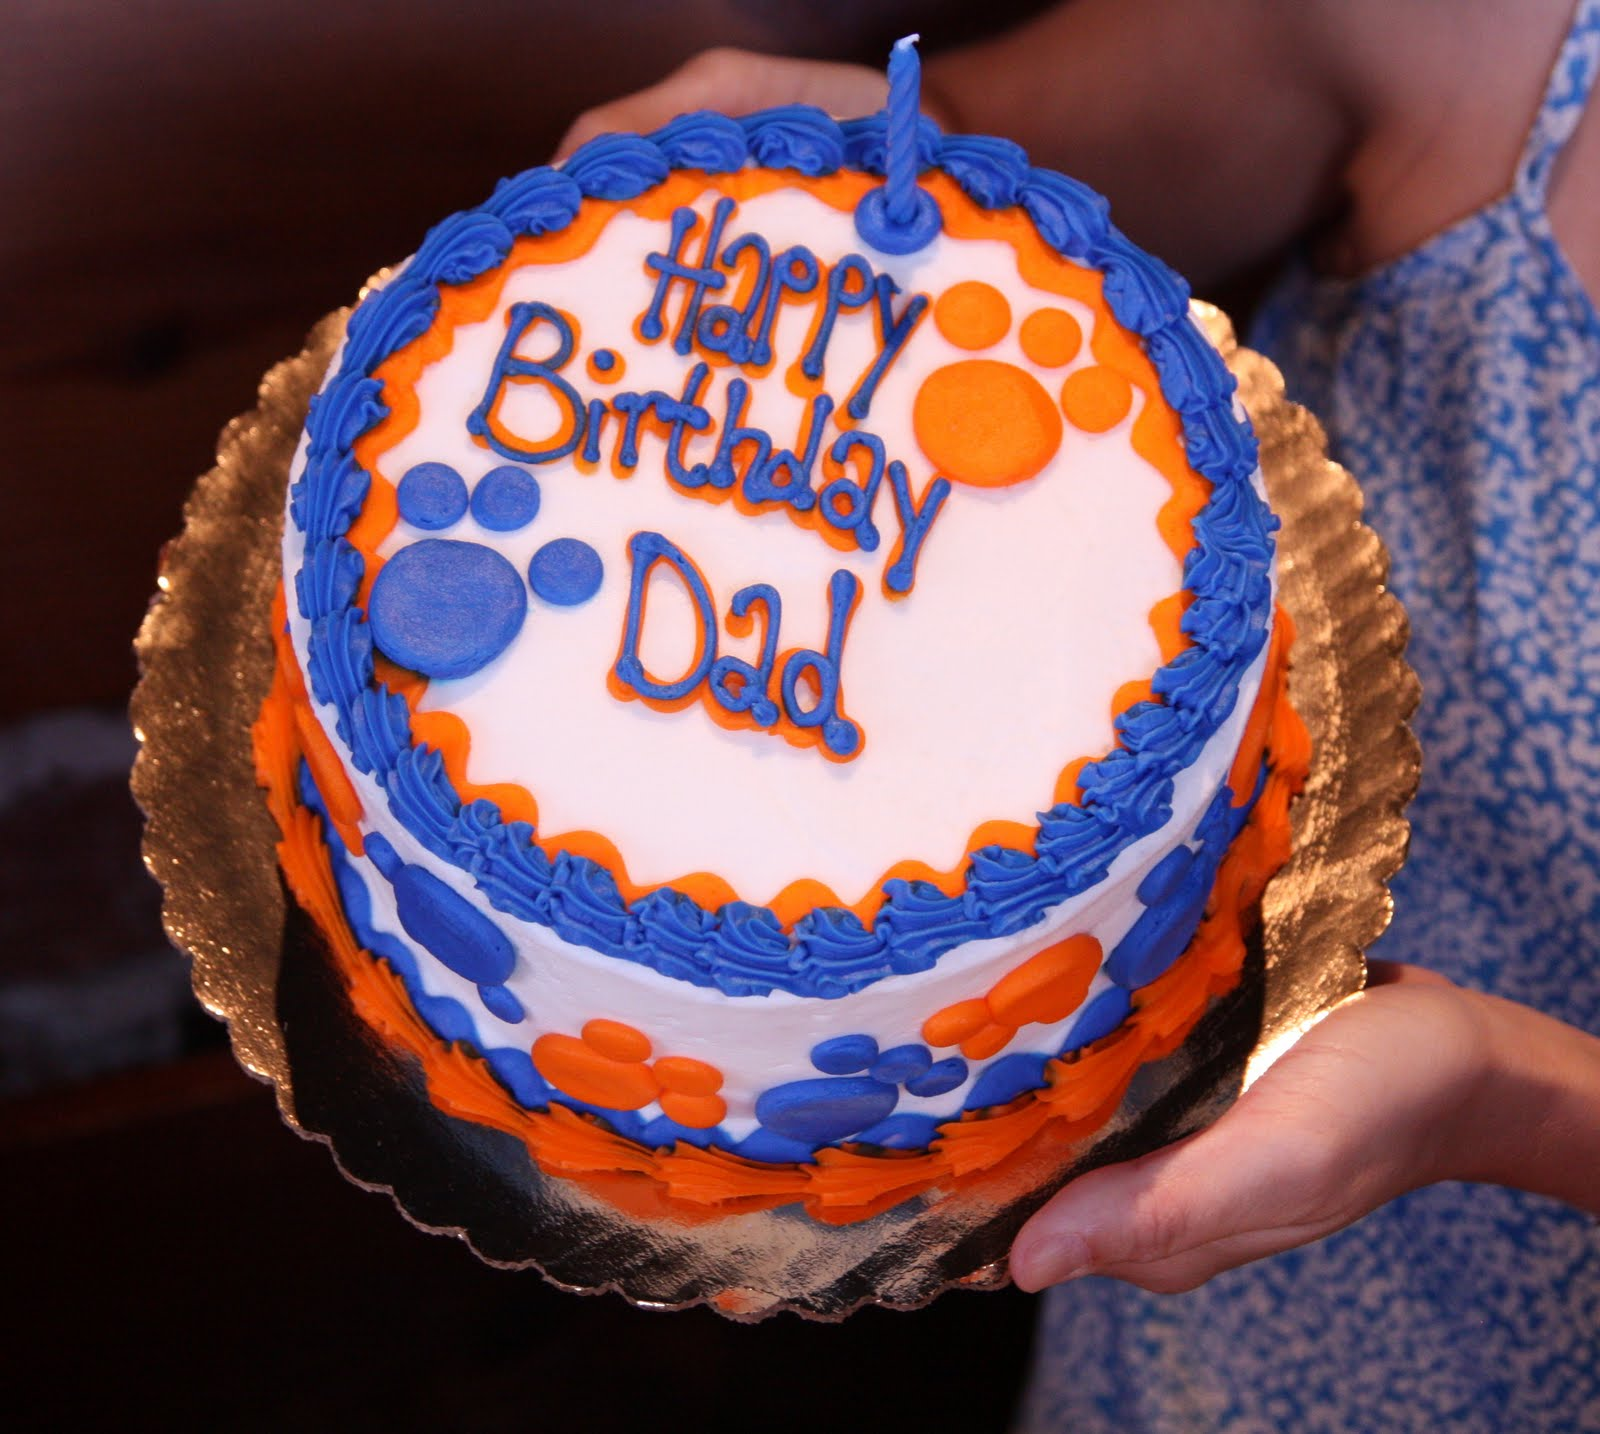 Happy Birthday Daddy Cake The best cake in the whole